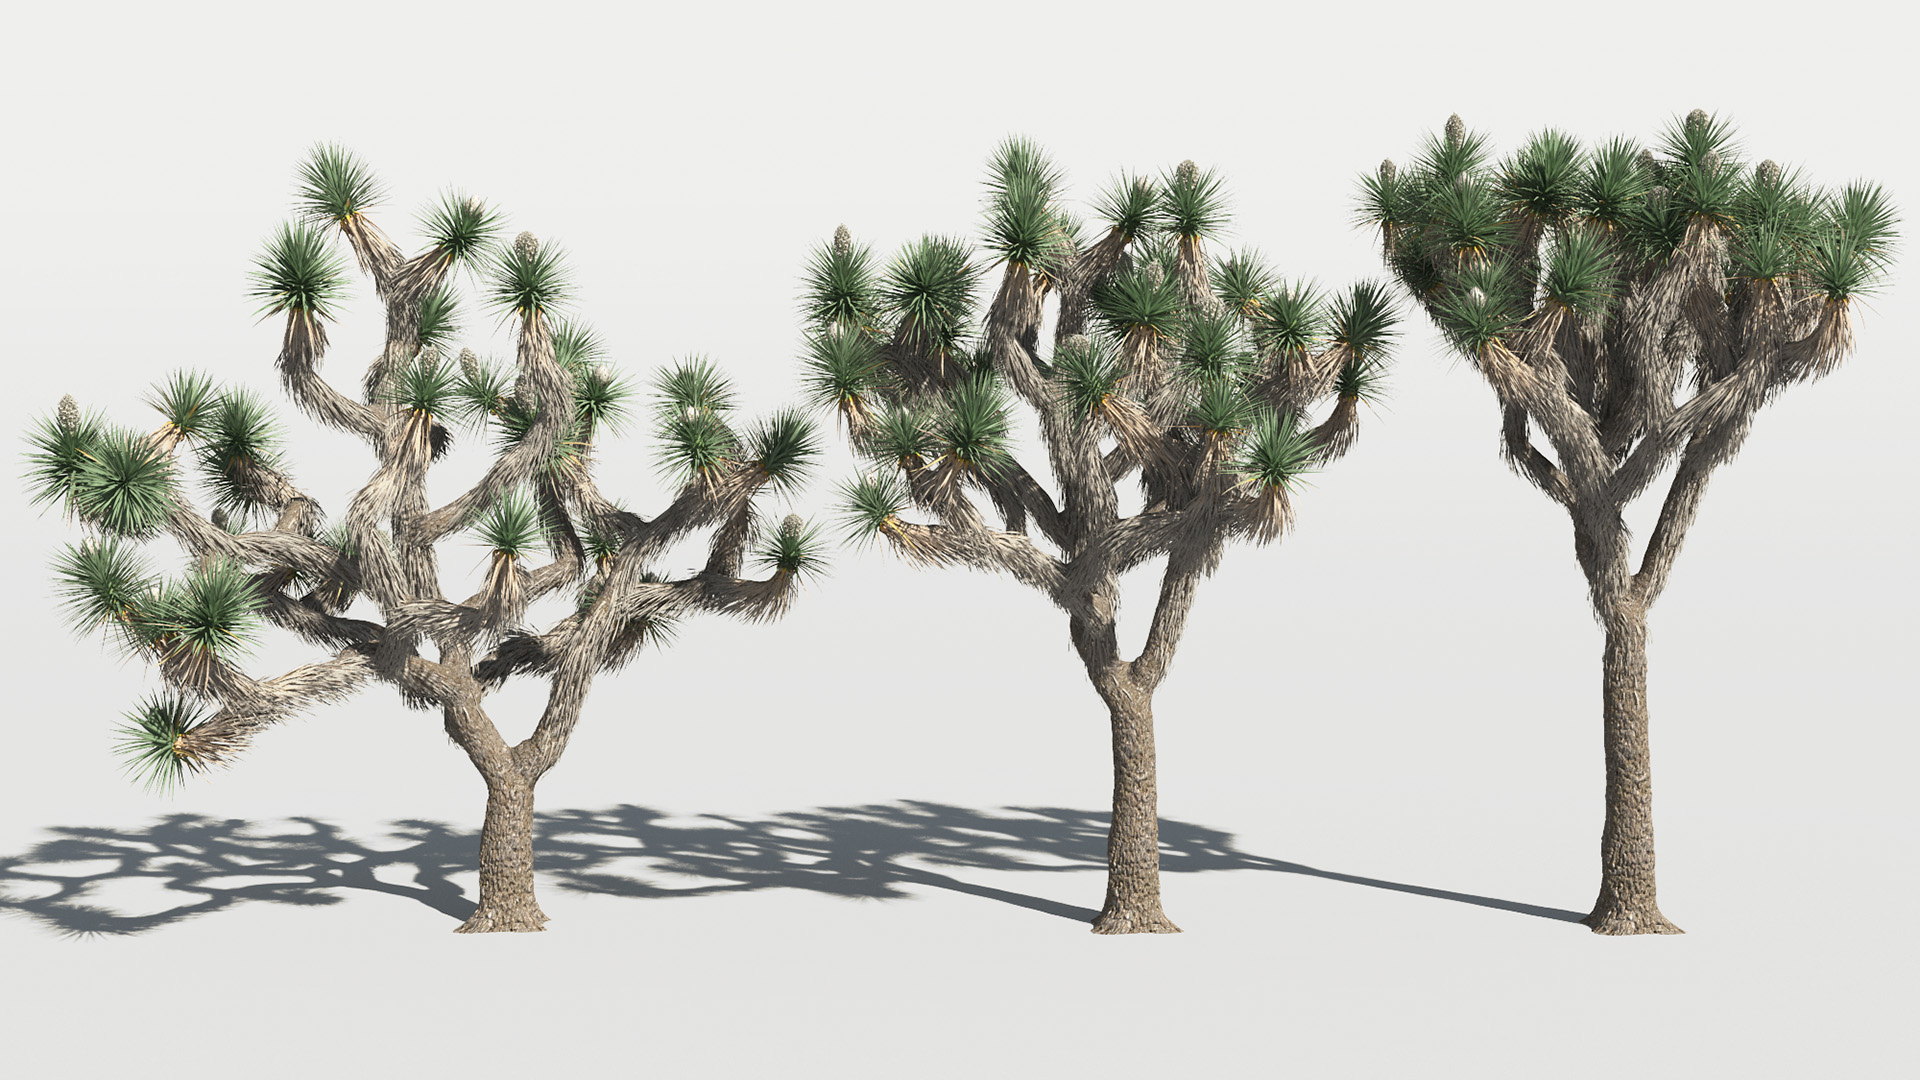 3D model of the Joshua tree Yucca brevifolia